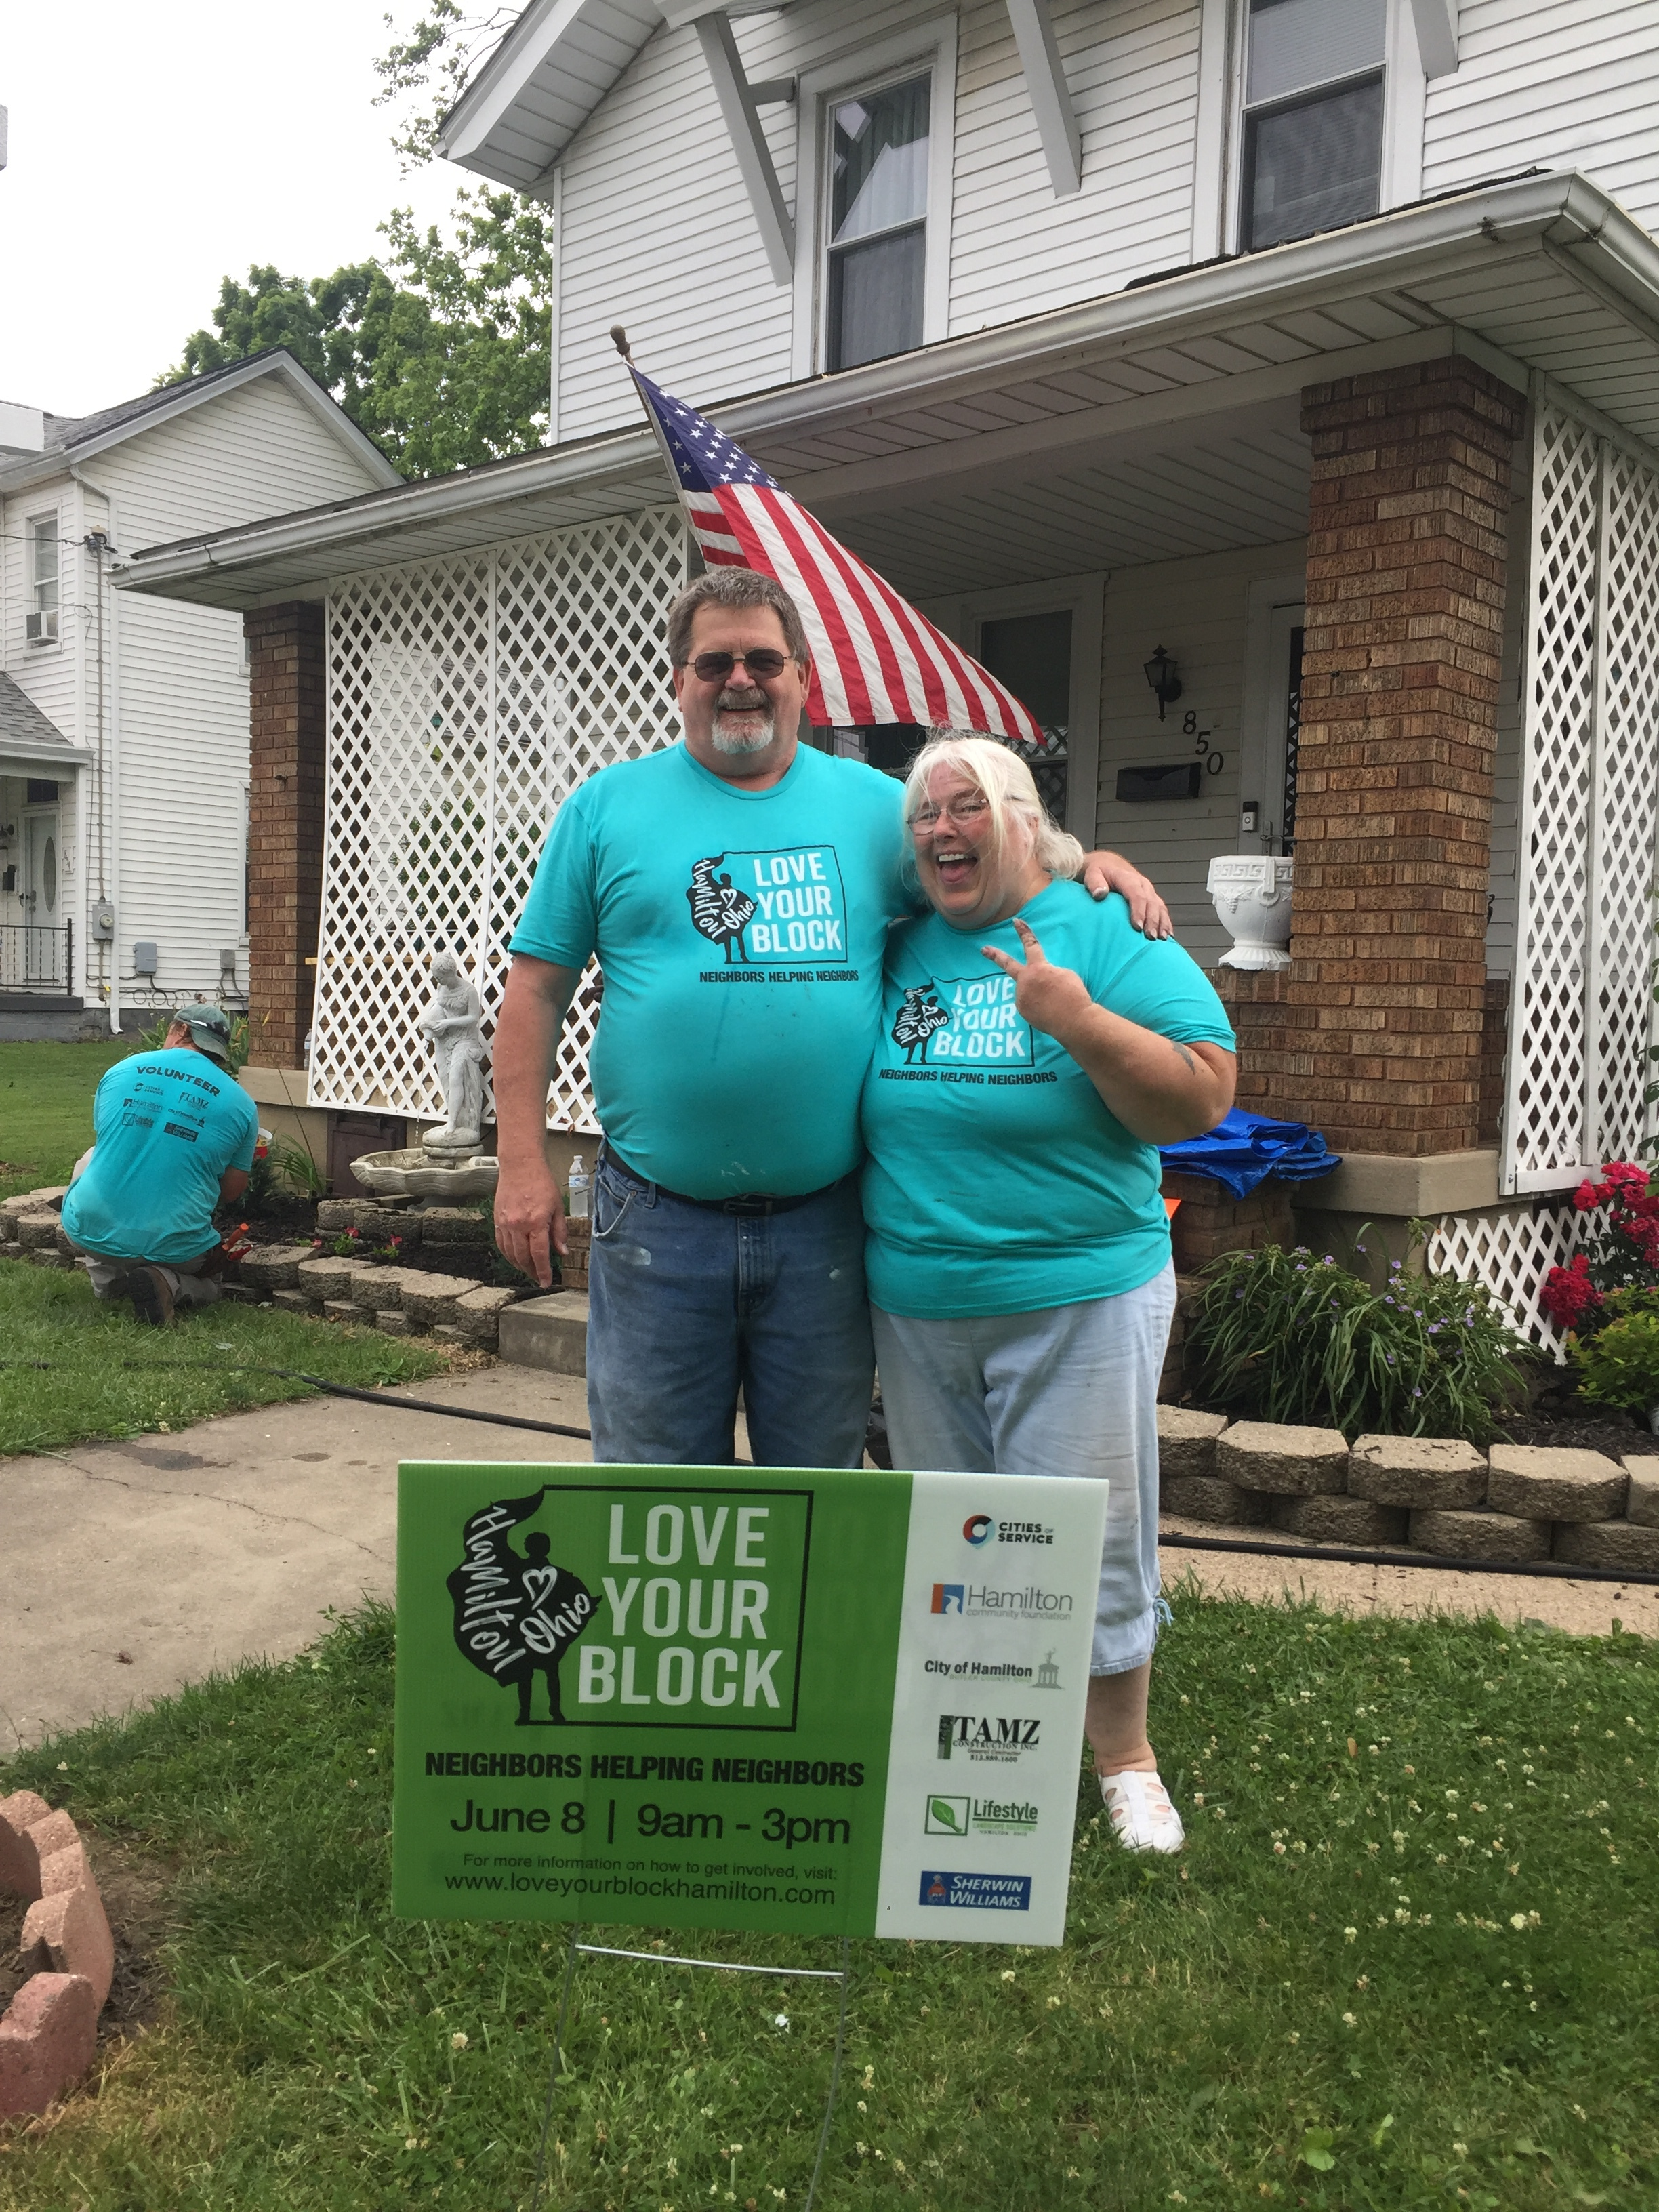 neighborhood champions - Bob and Yvonne Batterson live in the Armondale neighborhood. They have lived in their home for over 30 years. They take great care of their home and have stepped up as leaders in their neighborhood.